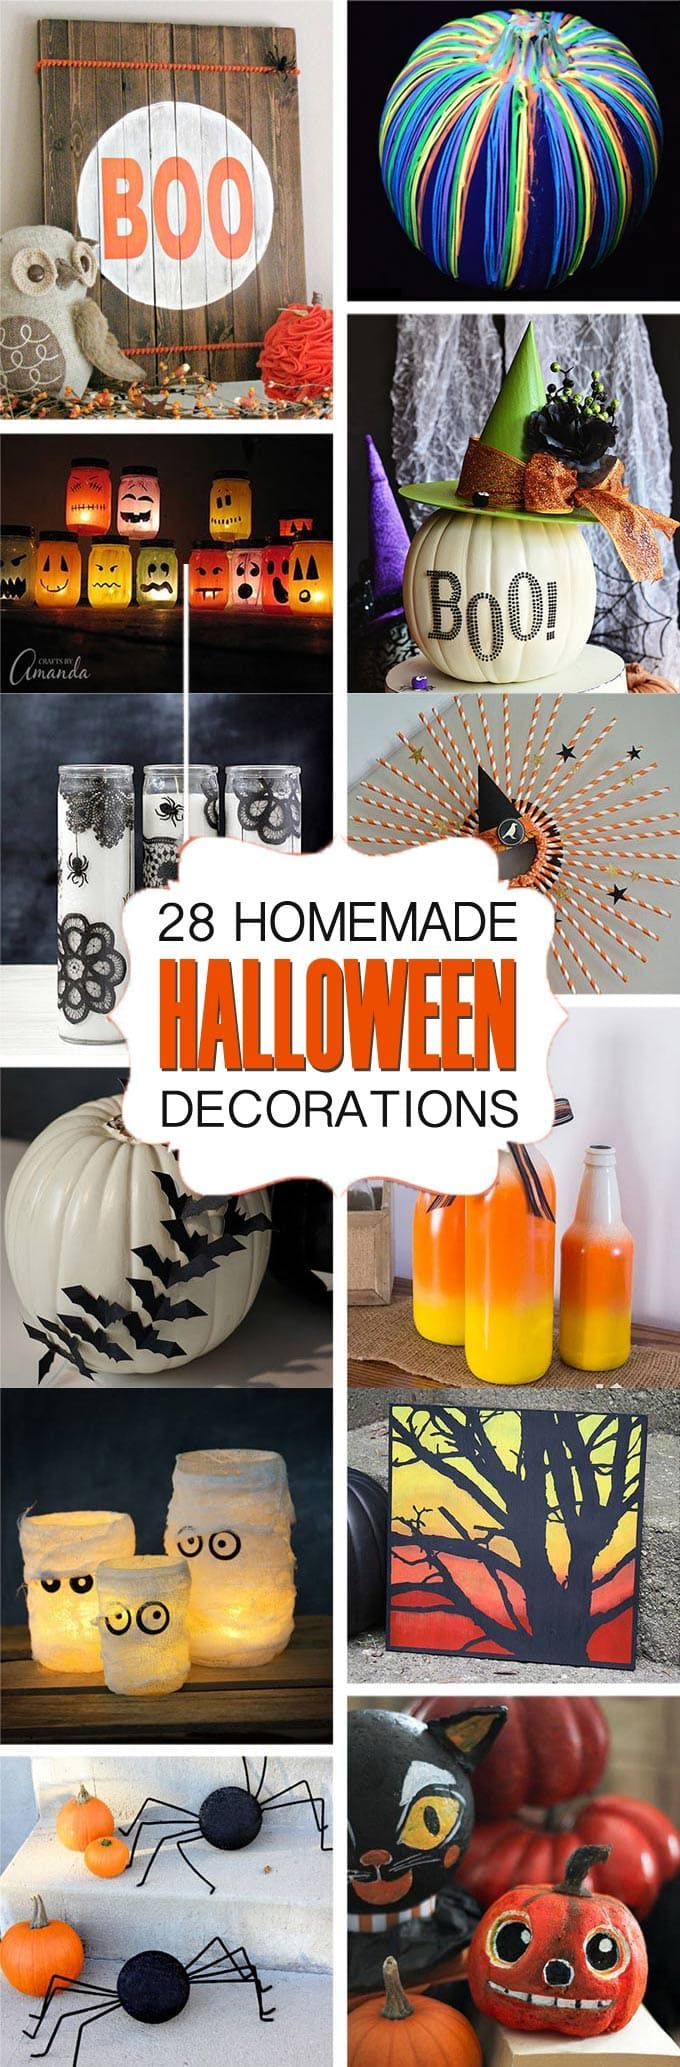 28 Homemade Halloween Decorations - if you are looking for crafty - Homemade Halloween Decorations